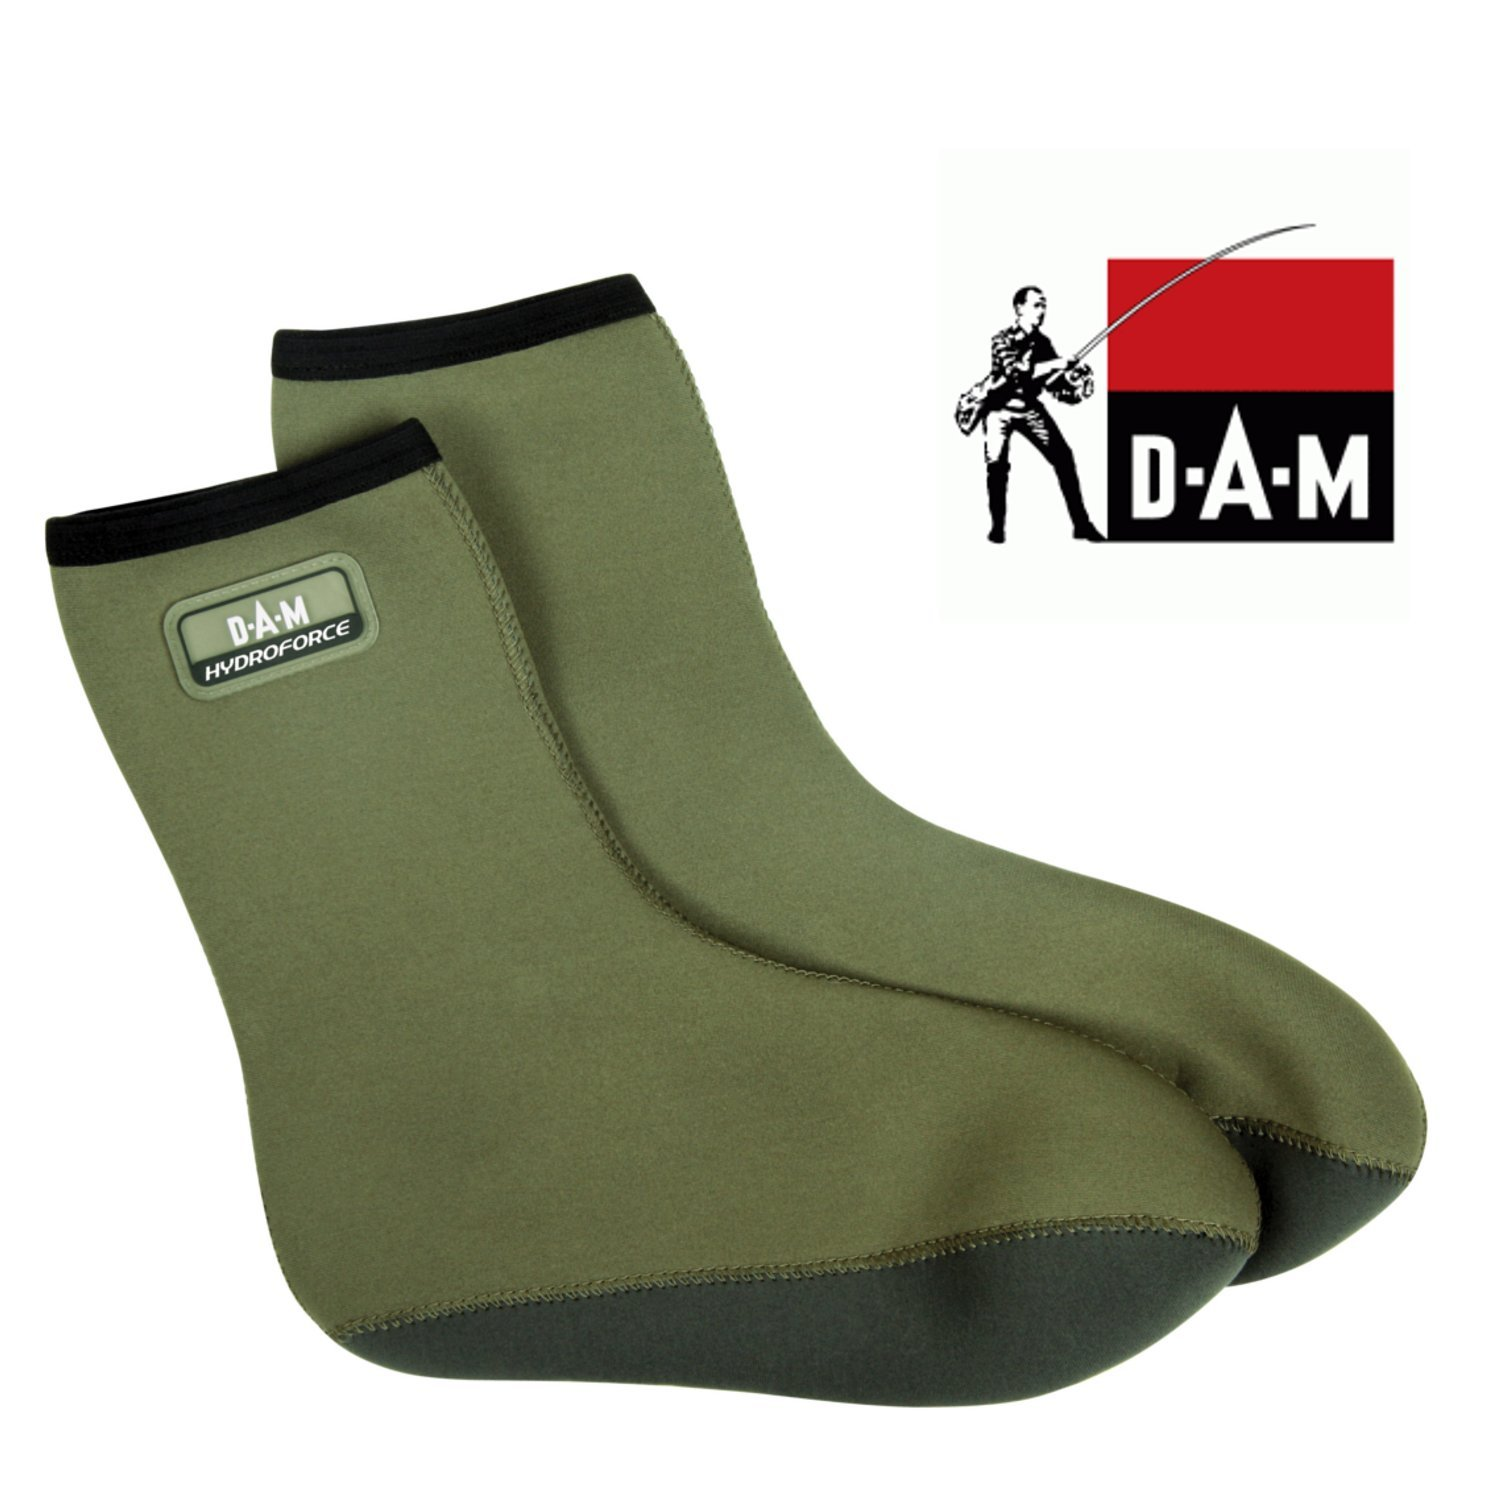 DAM HydroForce Neopren Socken m. Fleece Gr. M 42/43